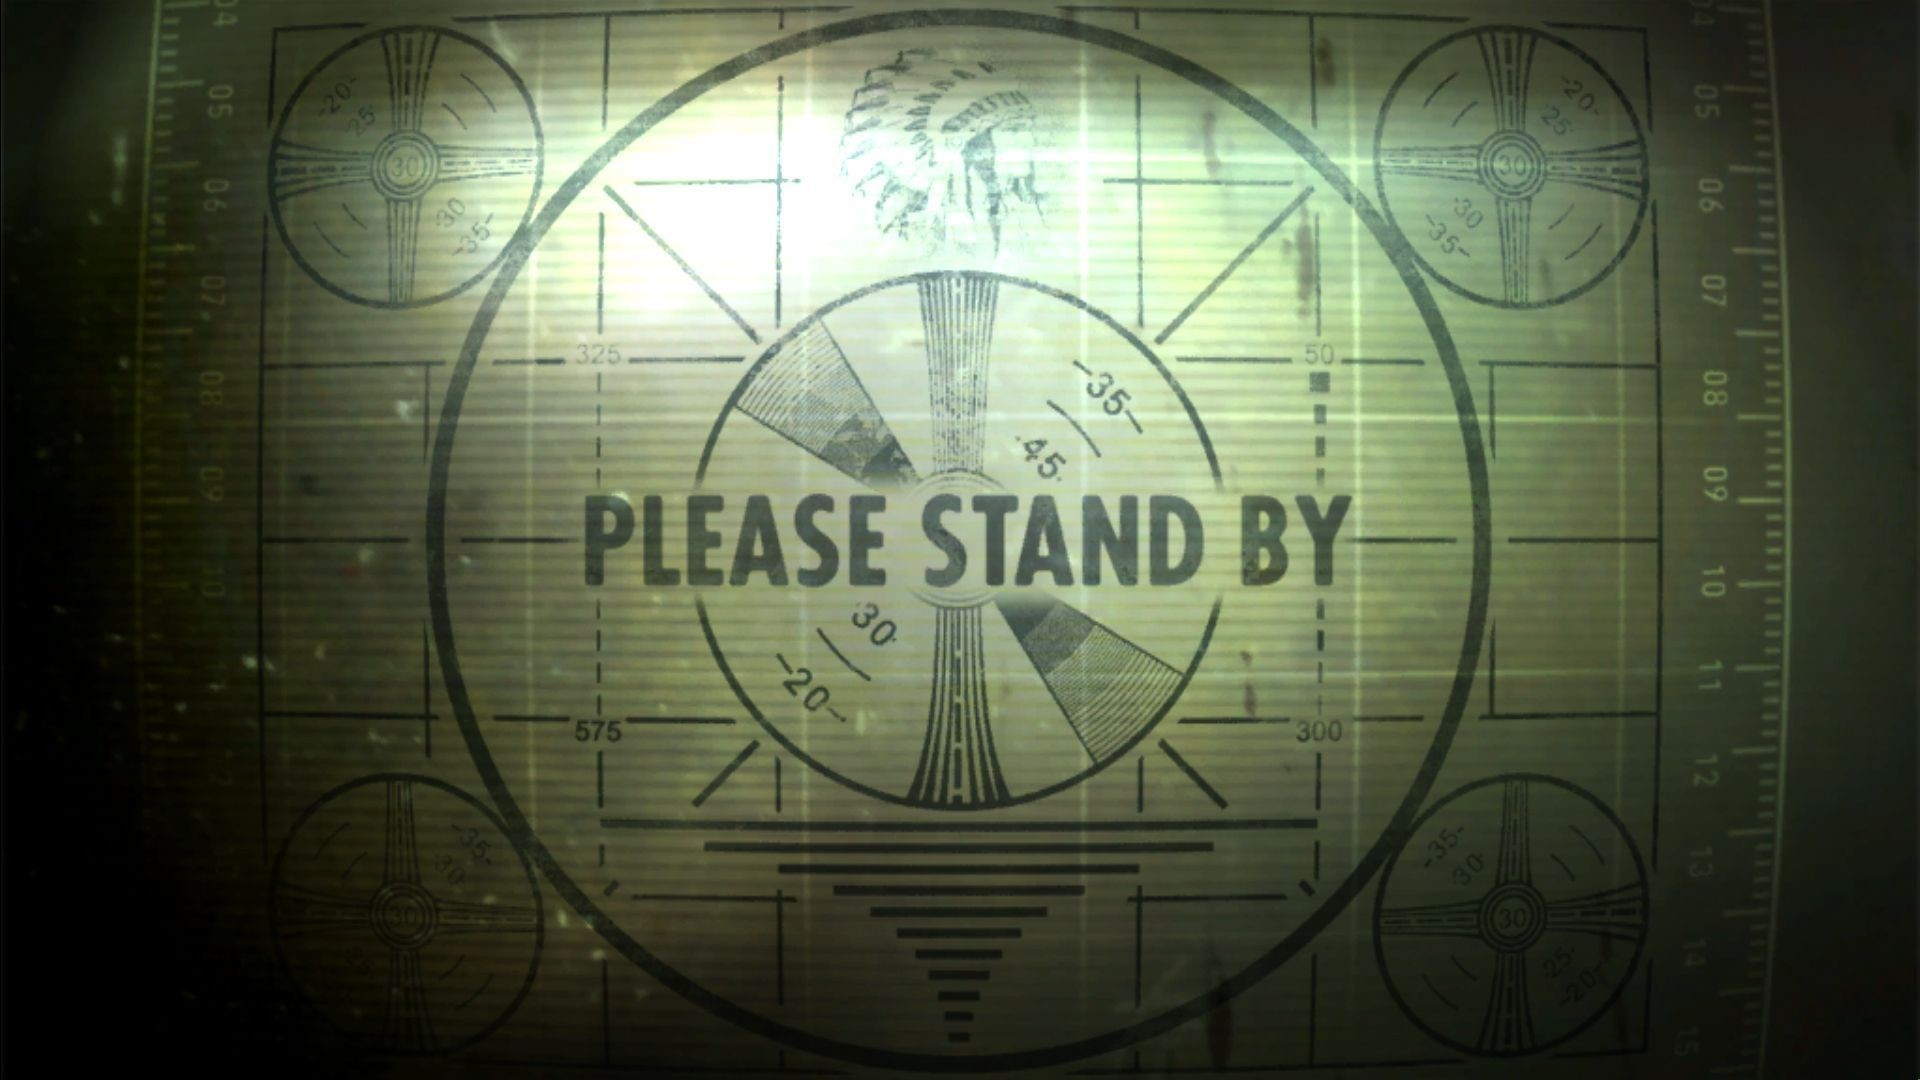 Fallout Wallpaper Download HD Attachment 14881 – HD Wallpapers Site